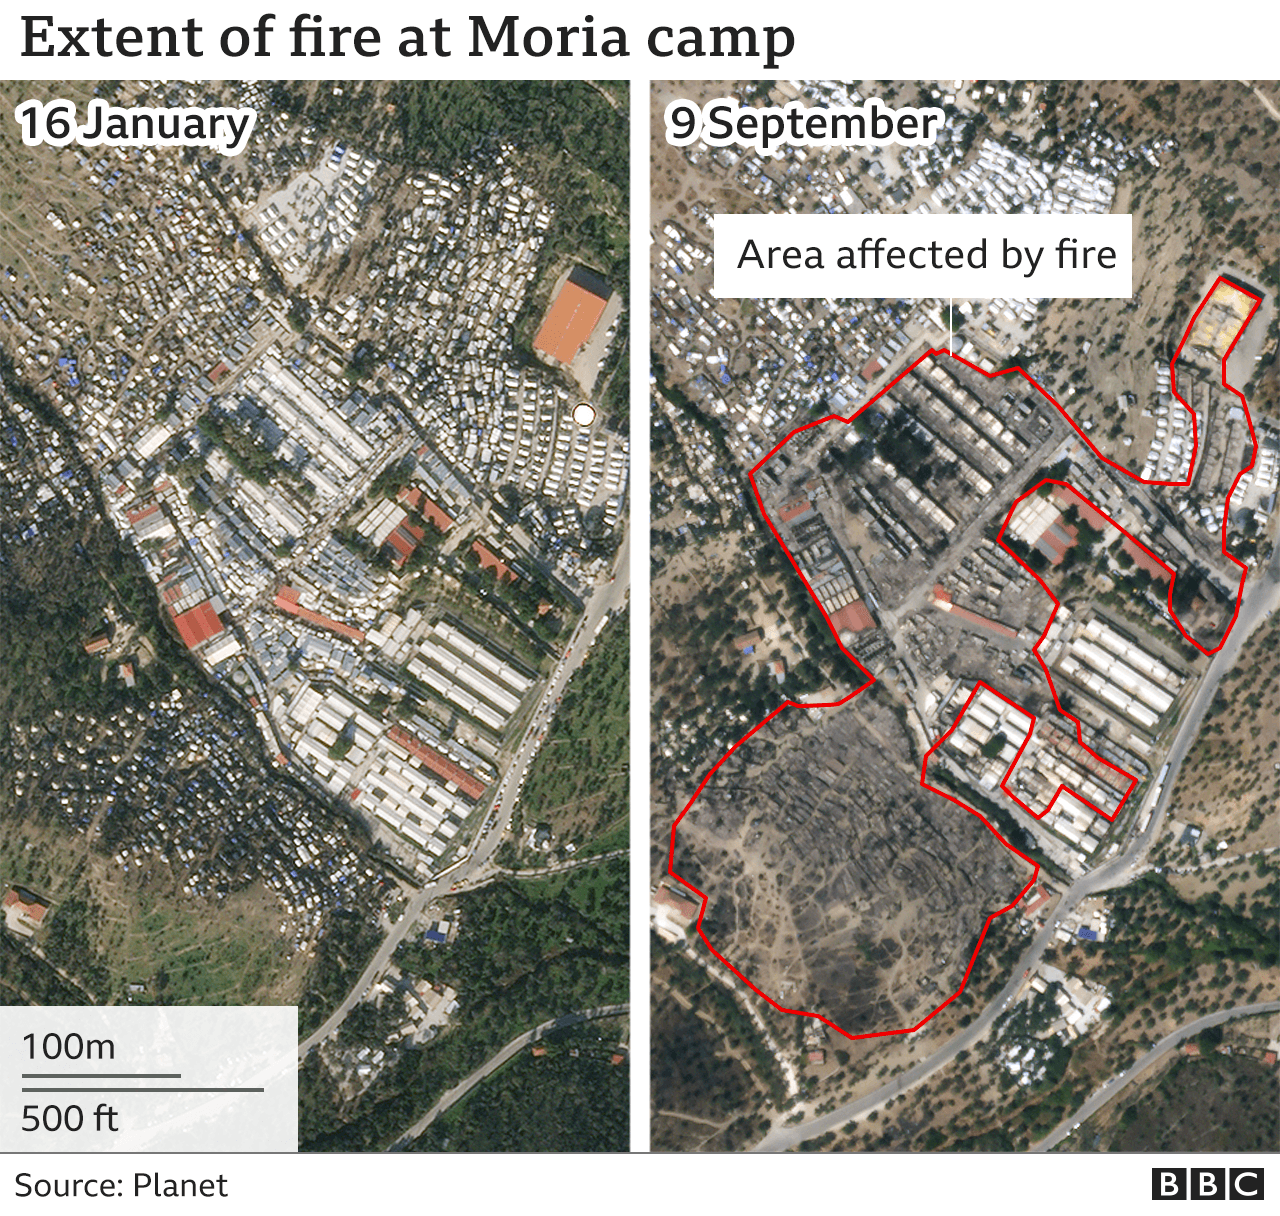 Map showing extent of the fire at the Moria camp